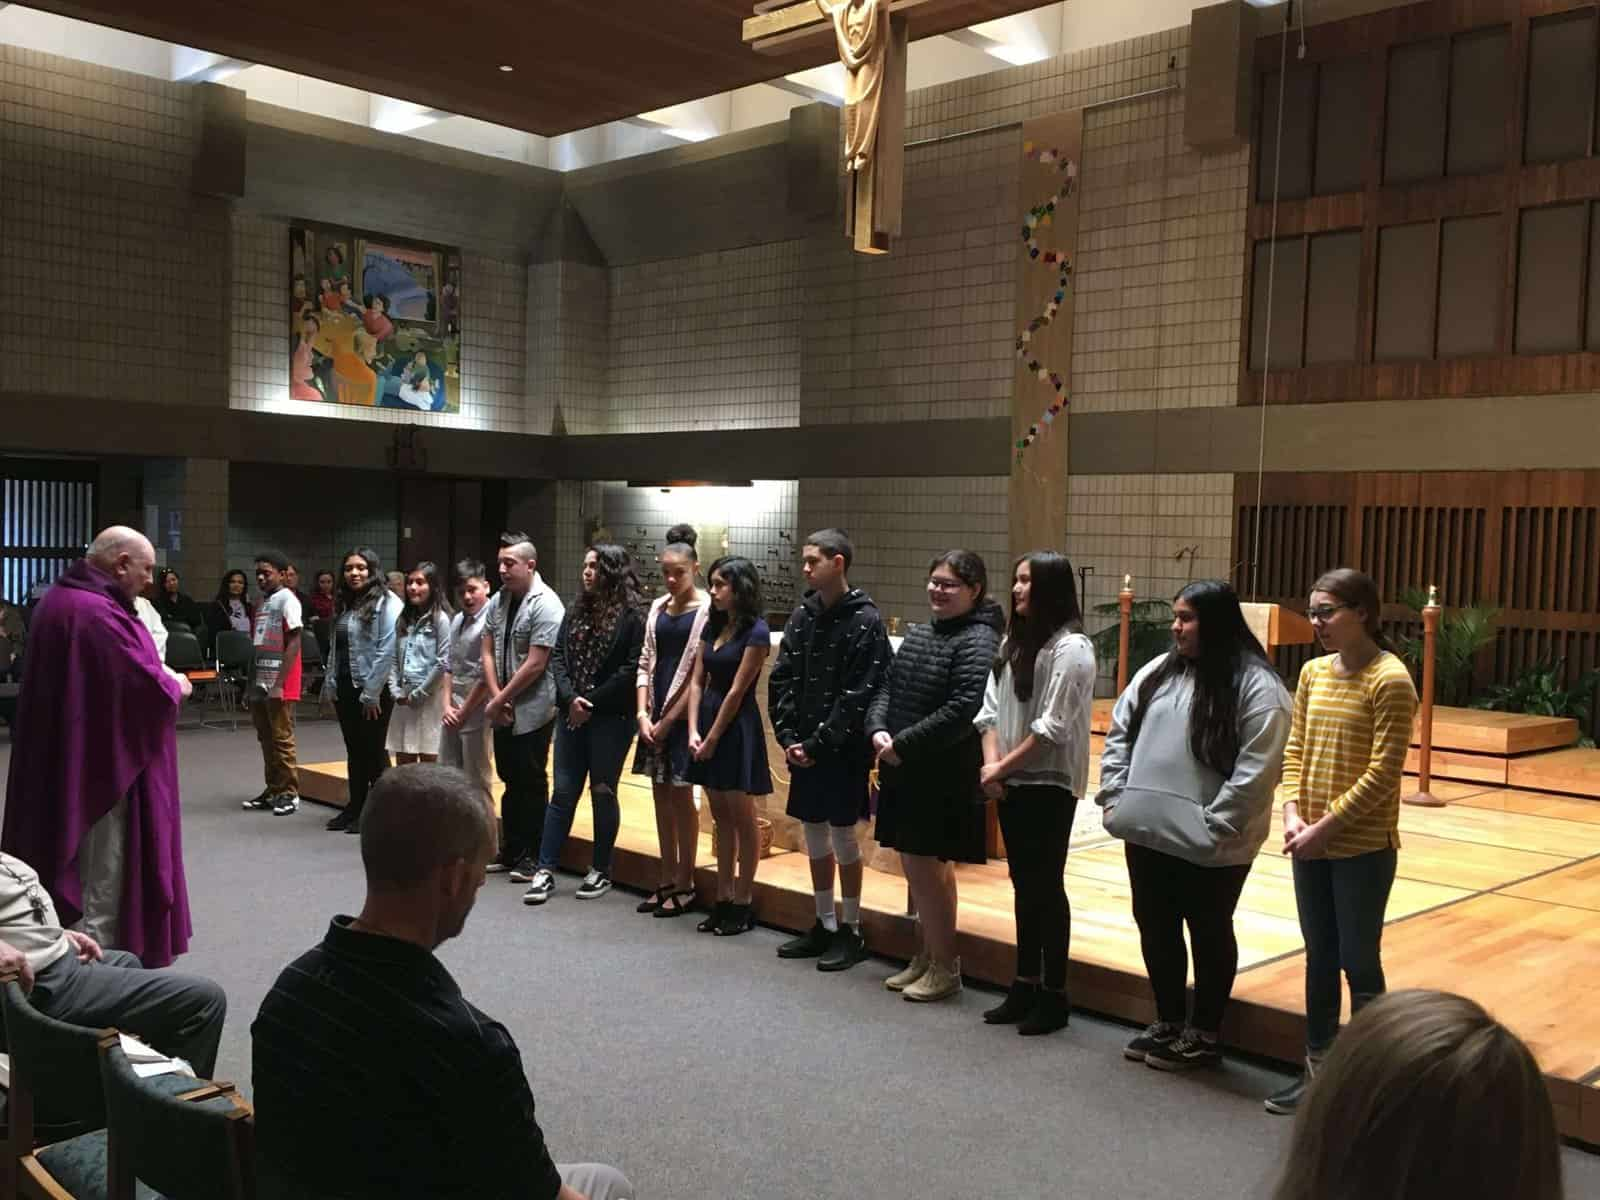 Blessing of Confirmation candidates by Fr. Steve Adrian on Sunday, March 8, at the 10:15 am Mass